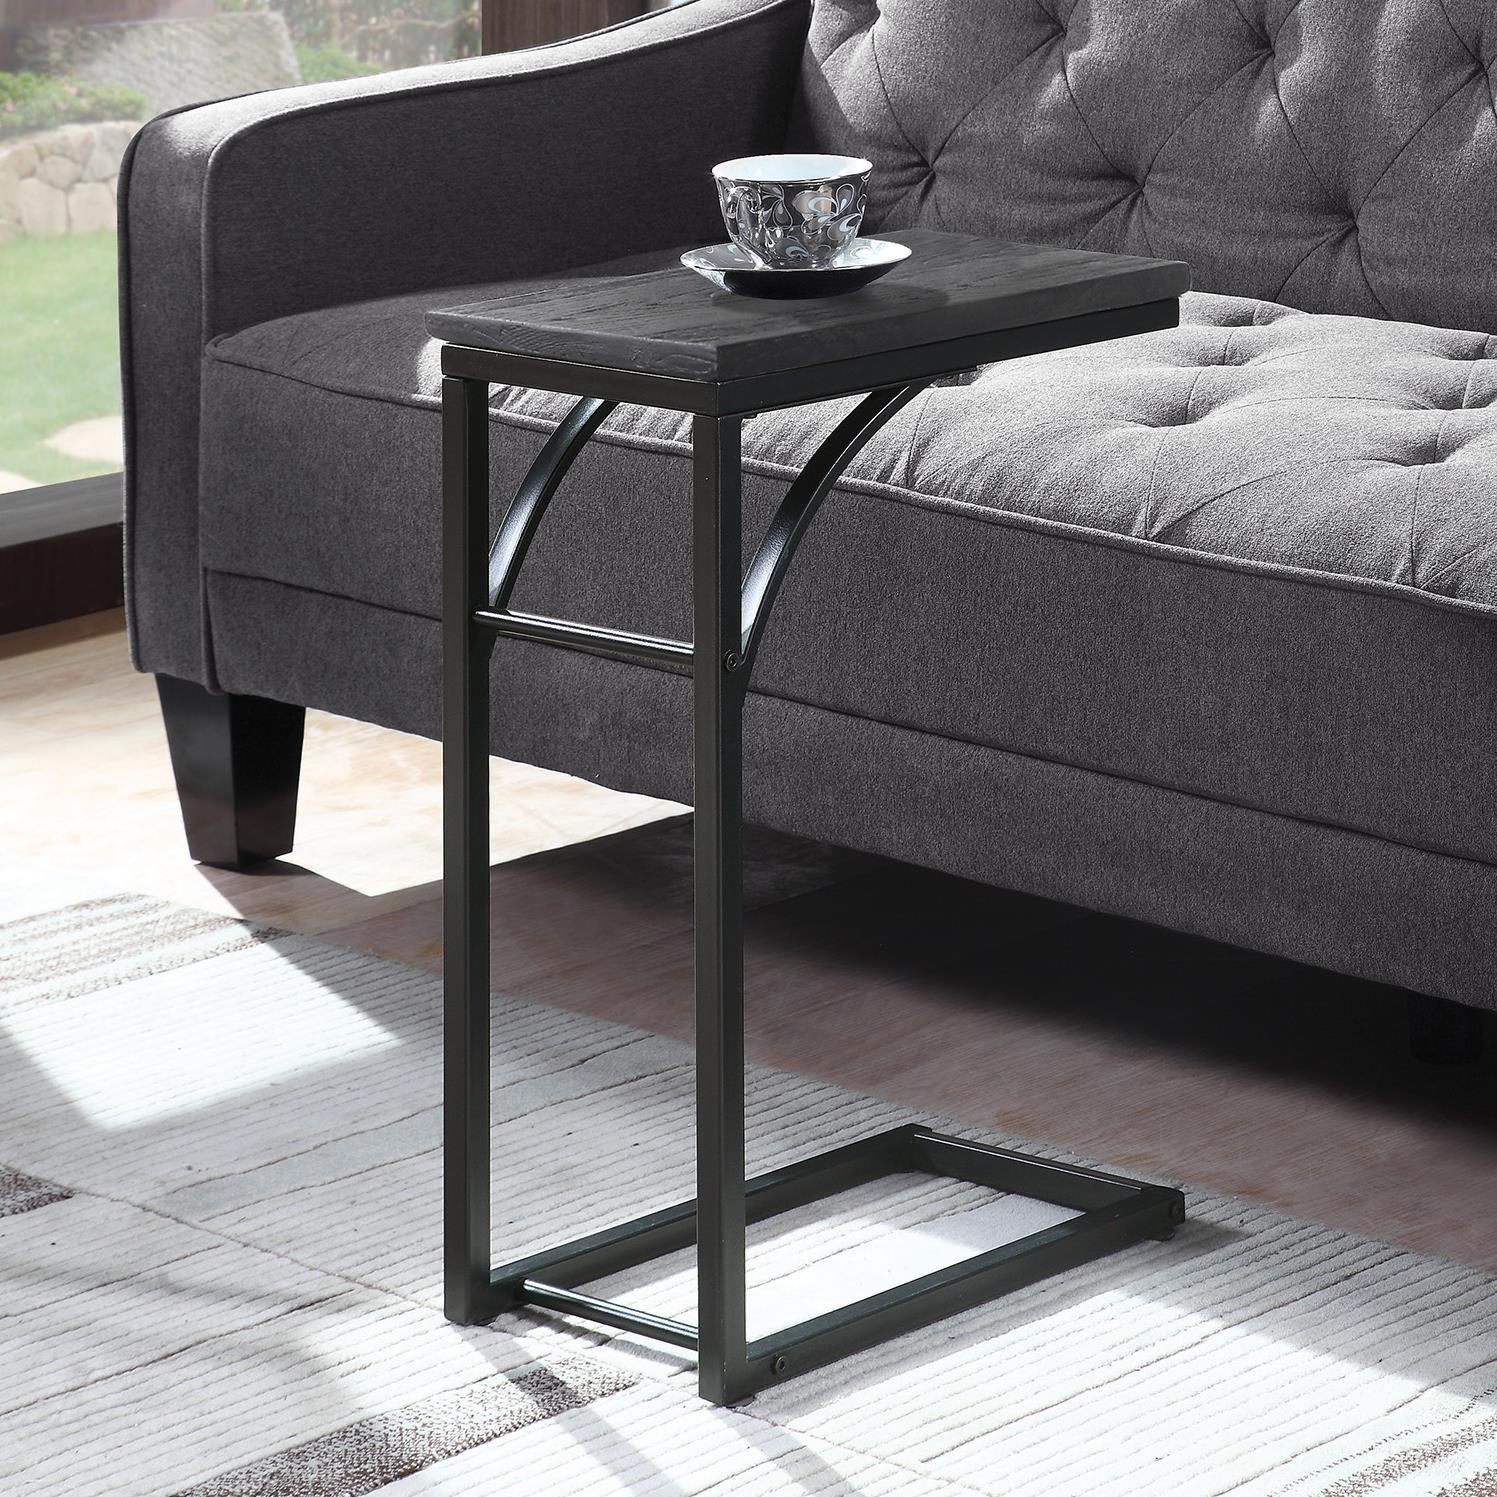 Coaster Accent Tables 930005 Industrial Black Accent Table